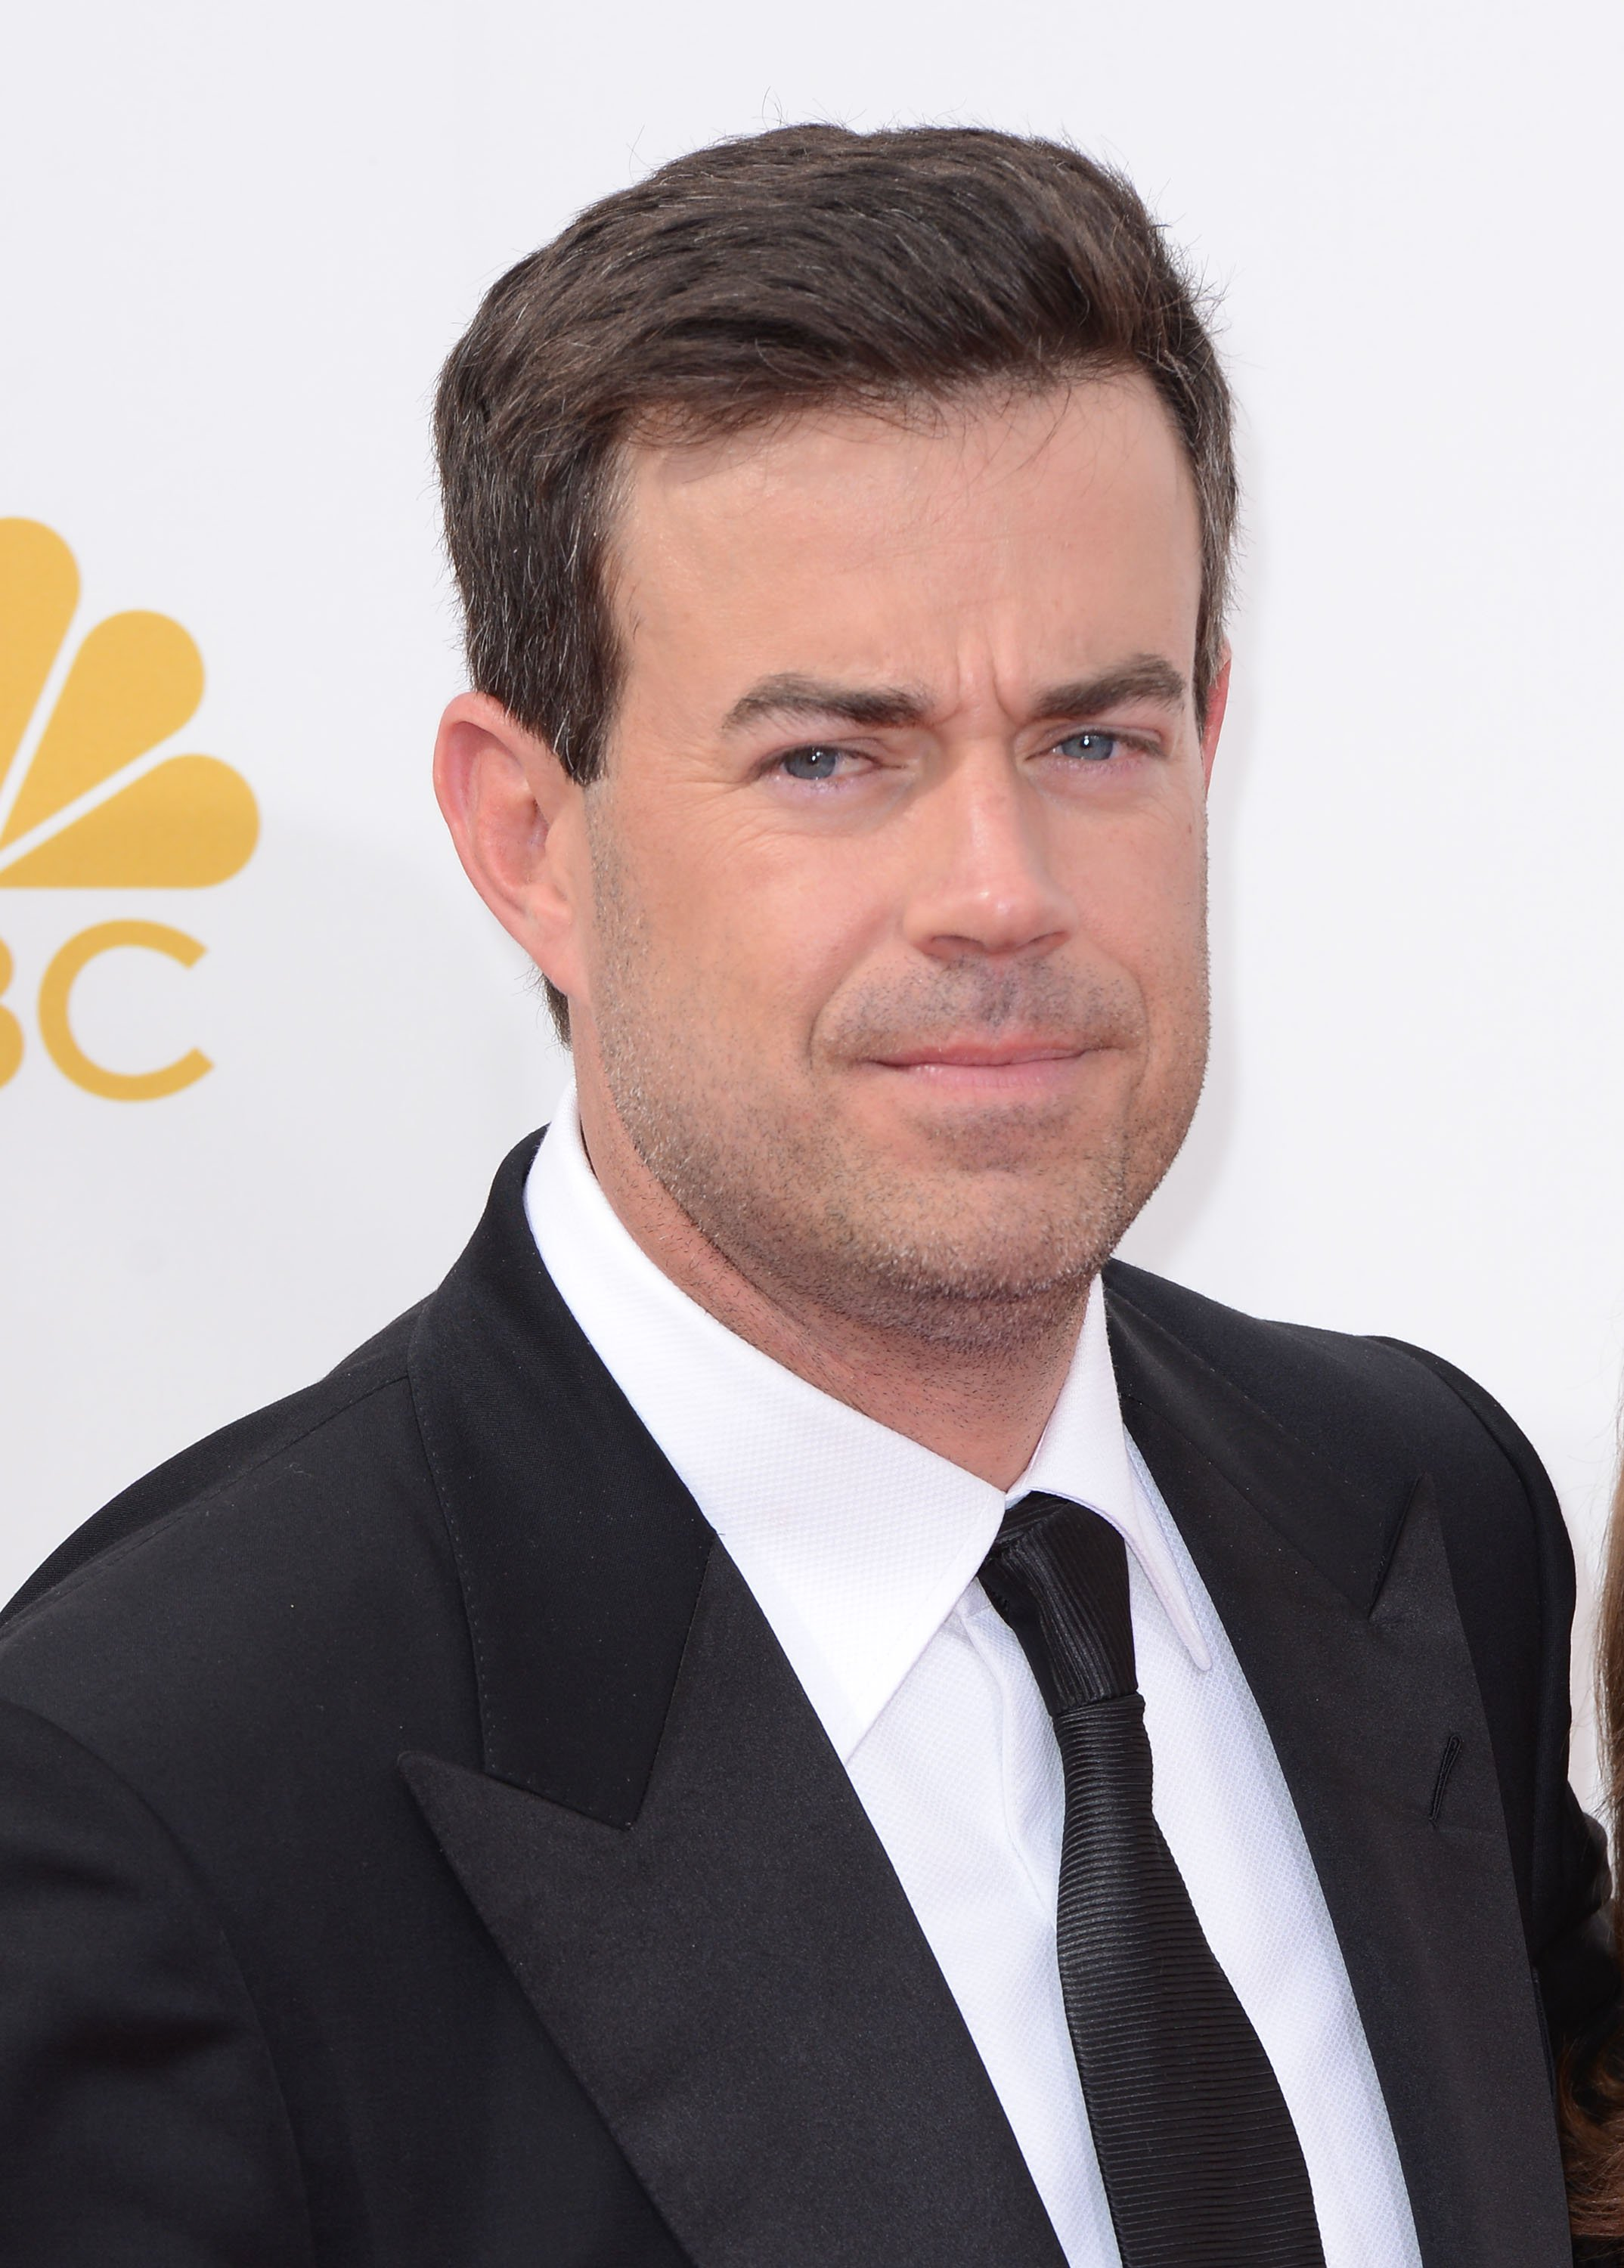 Carson Daly attends the 66th Annual Primetime Emmy Awards in Los Angeles, California on August 25, 2014 | Photo: Getty Images